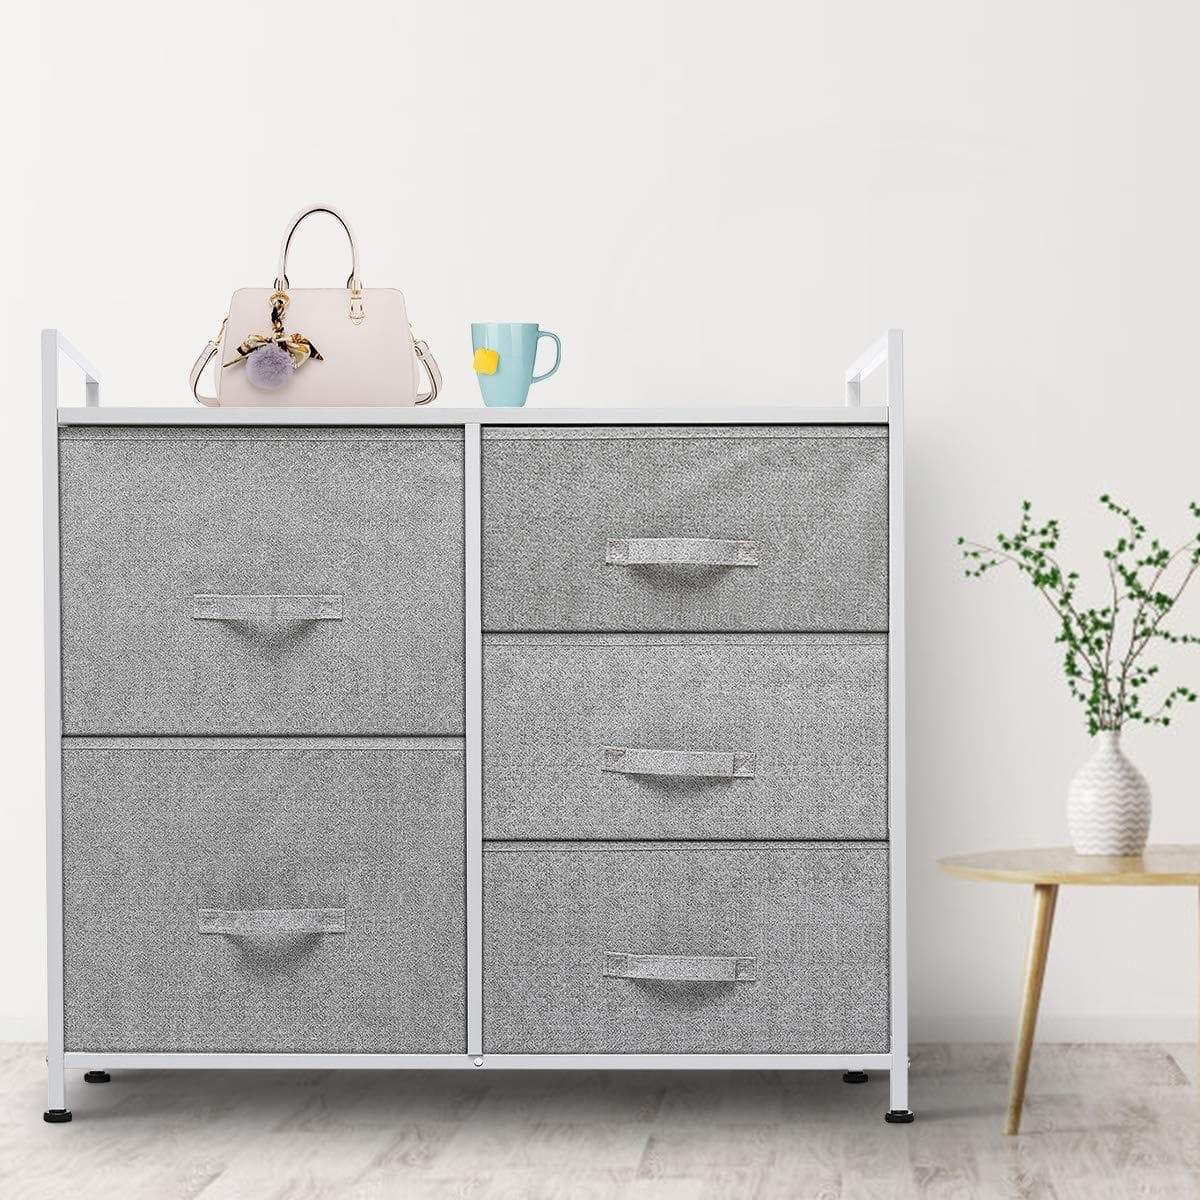 Top rated kingso fabric 5 drawer dresser storage tower organizer unit with sturdy steel frame and easy pull faux linen drawers for bedroom living room guest room dorm closet grey